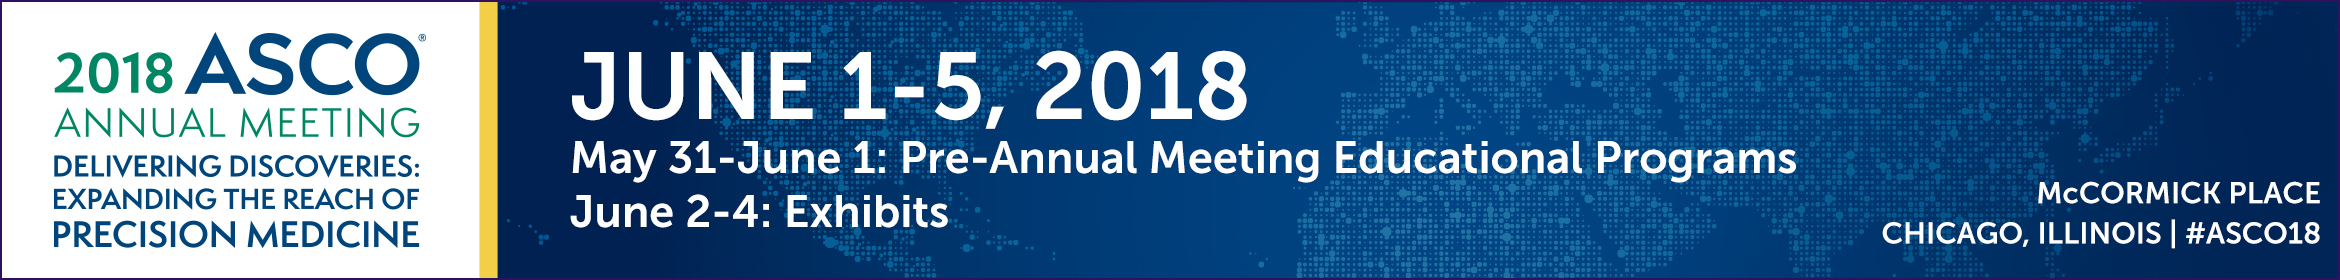 2018 ASCO Annual Meeting - Event Map